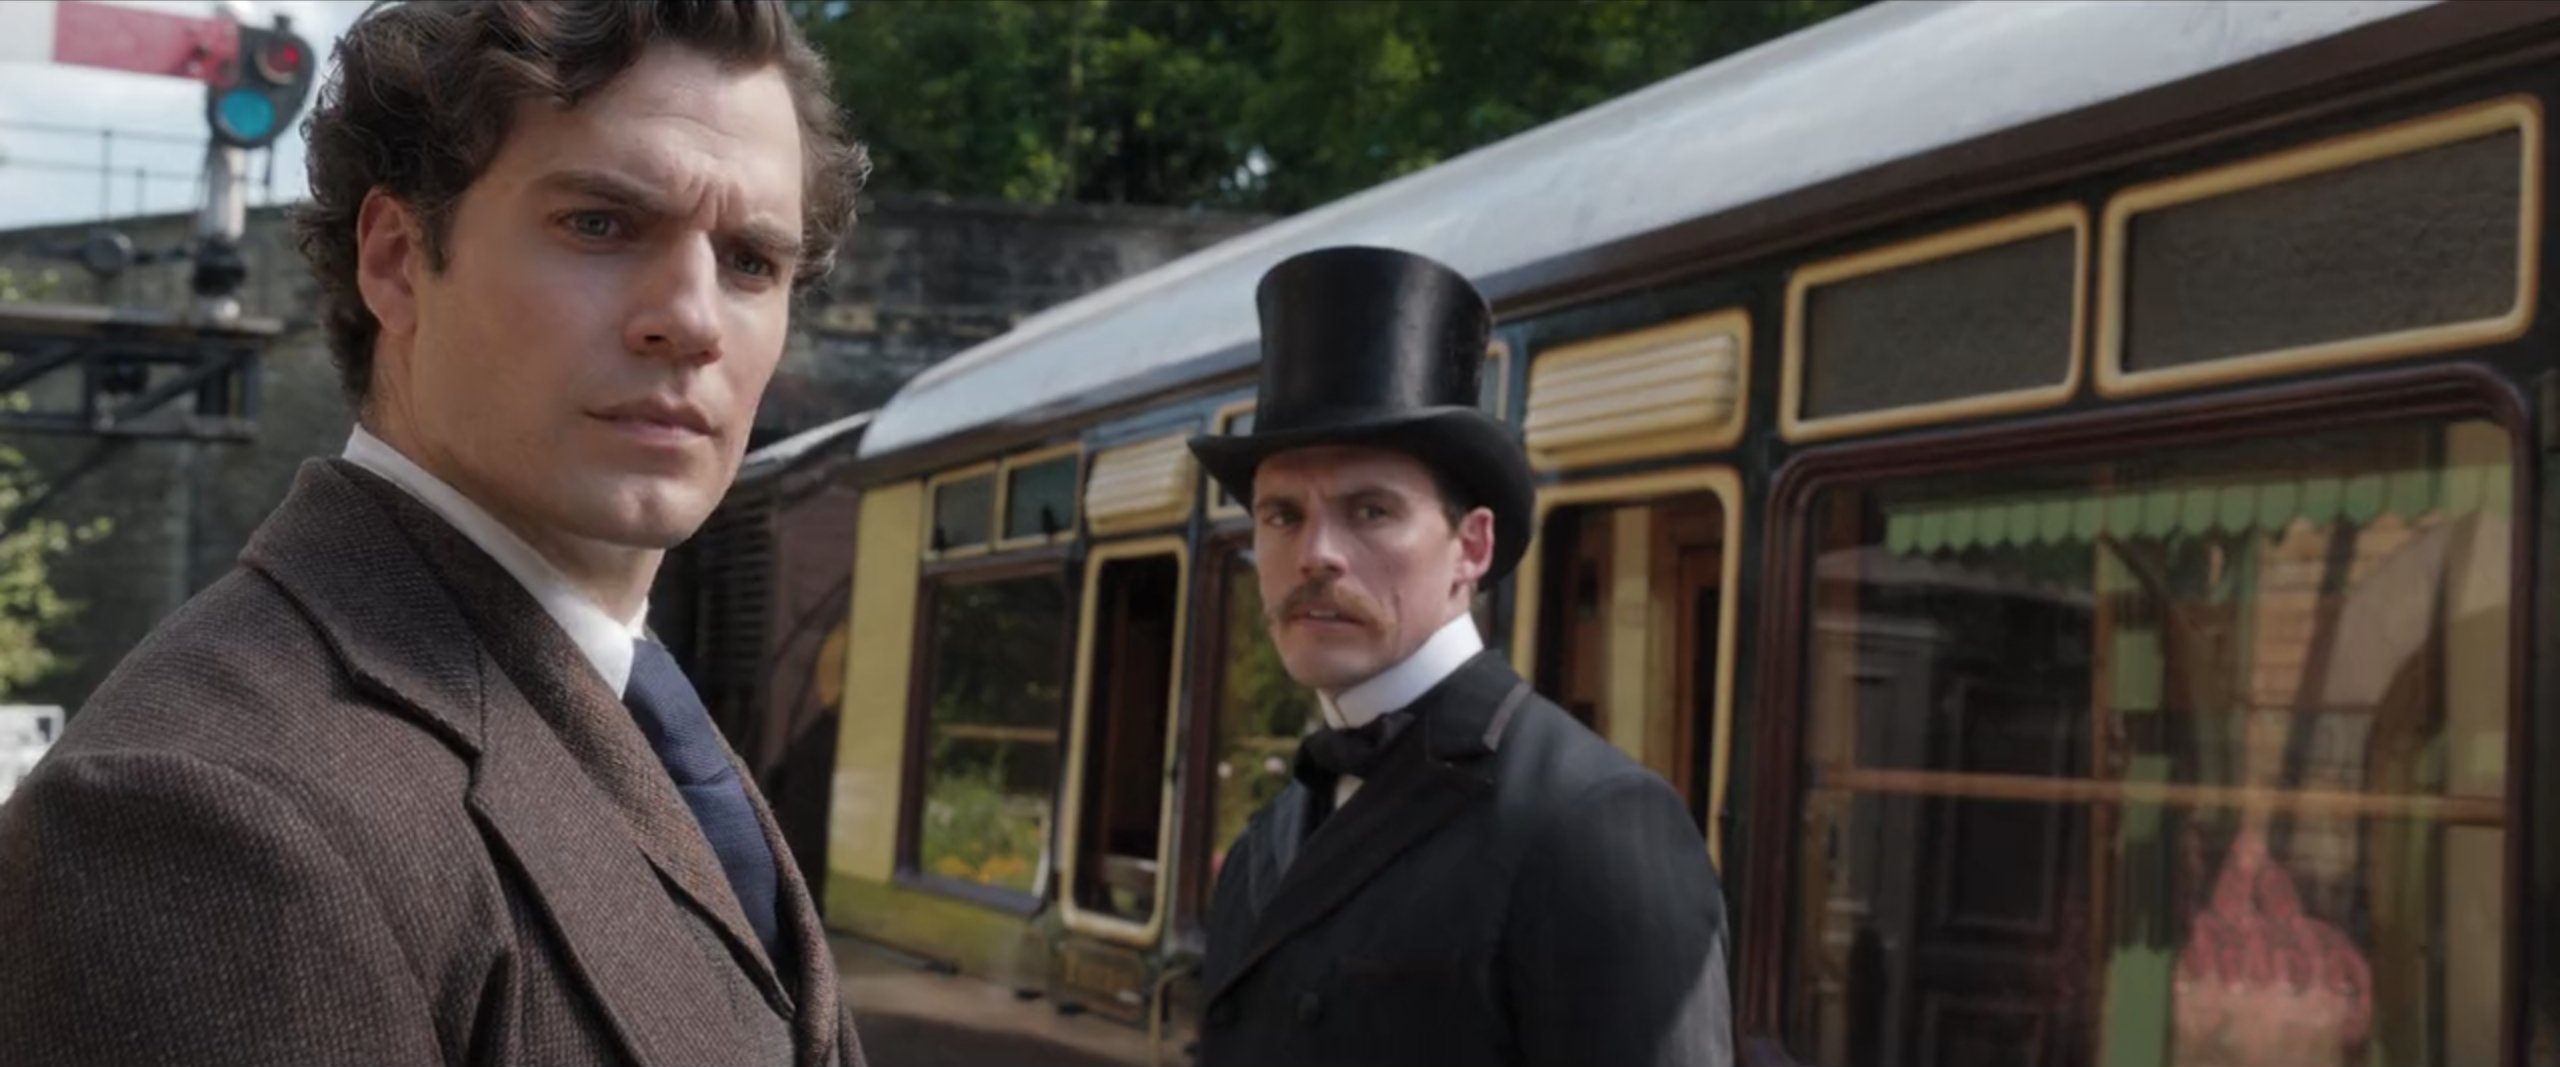 Sherlock and Mycroft stare at Enola, who is out of the frame.